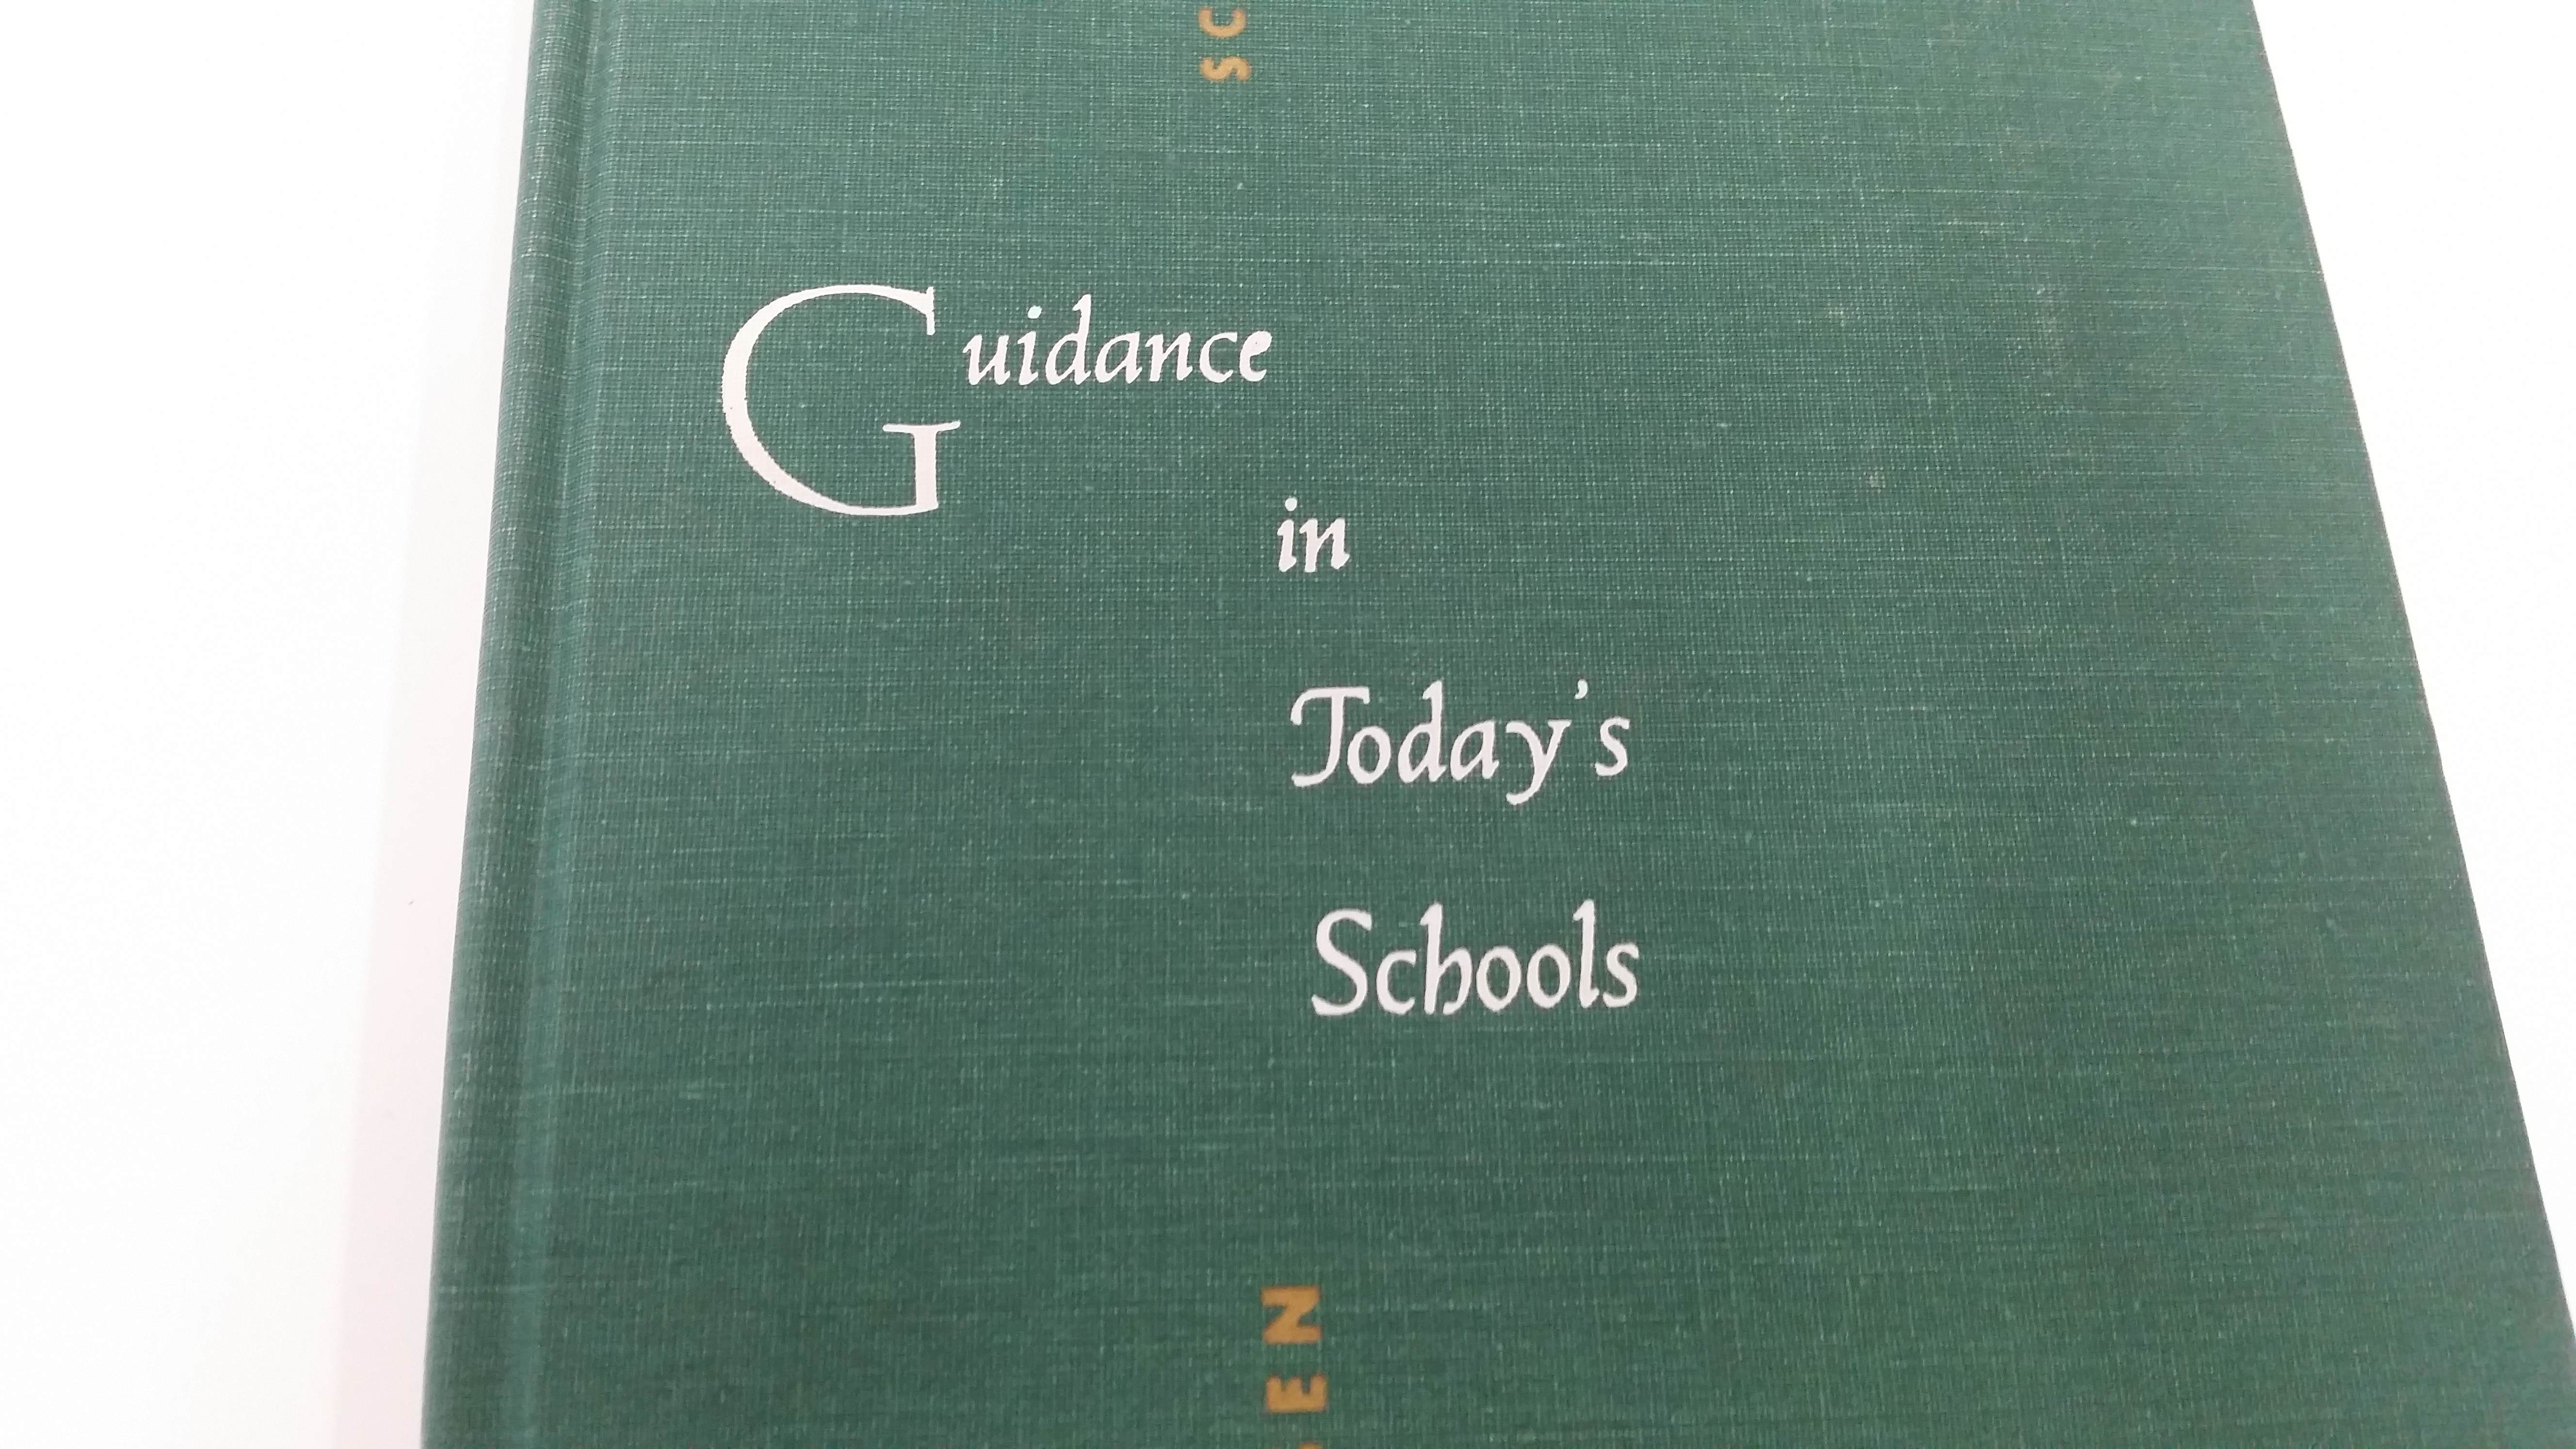 Education resource from 1959.